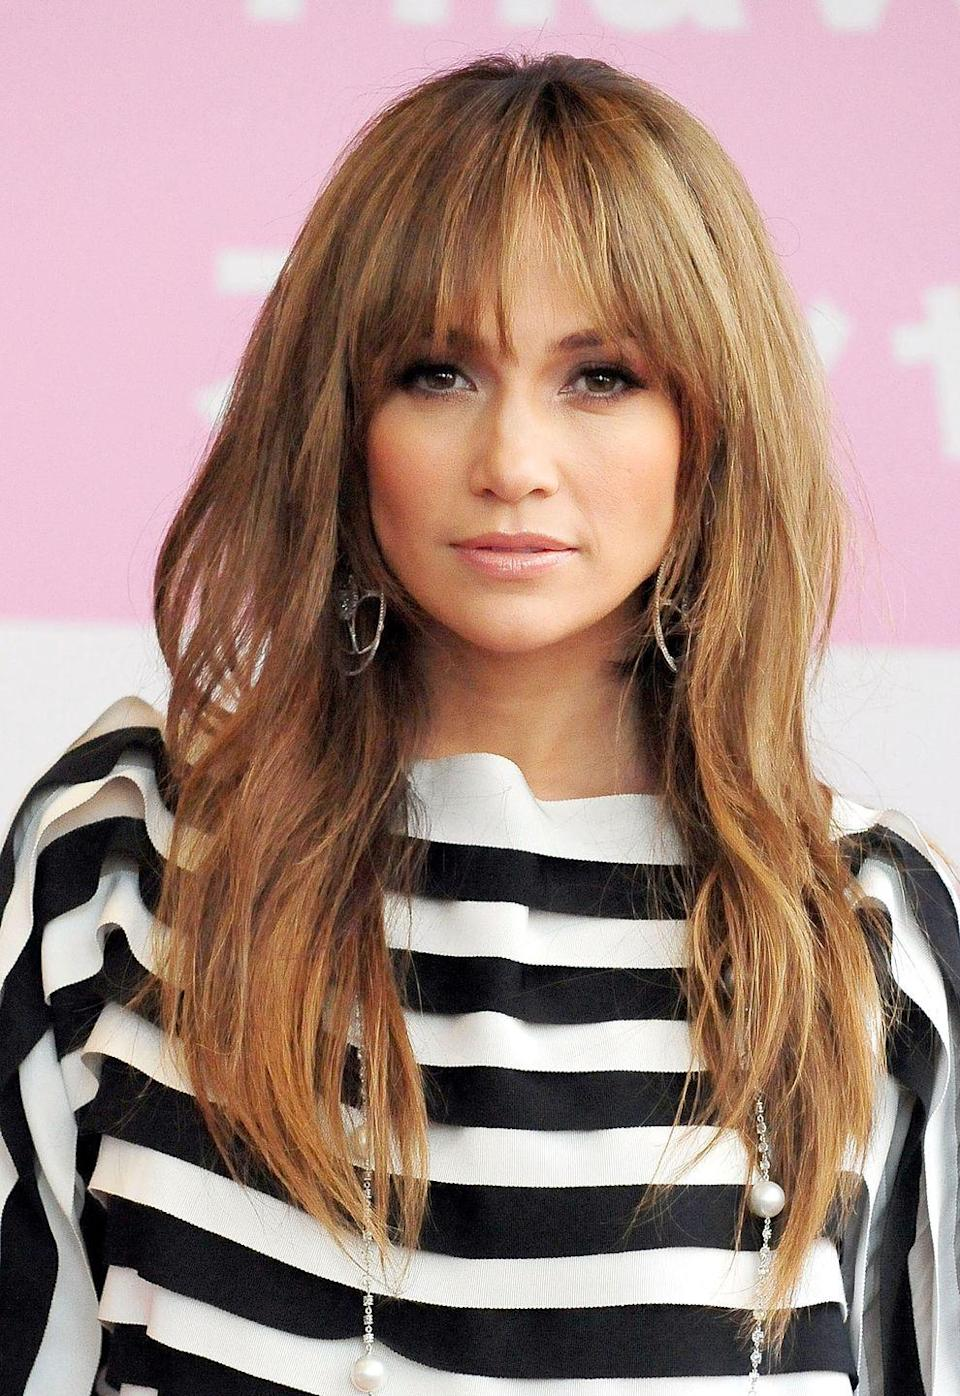 <p>Bring a Brigitte Bardot-esque touch to your shaggy long locks with wispy bangs. Just make sure to blow them out after shampooing — frizzy bangs are the opposite of what you want with this look.</p>